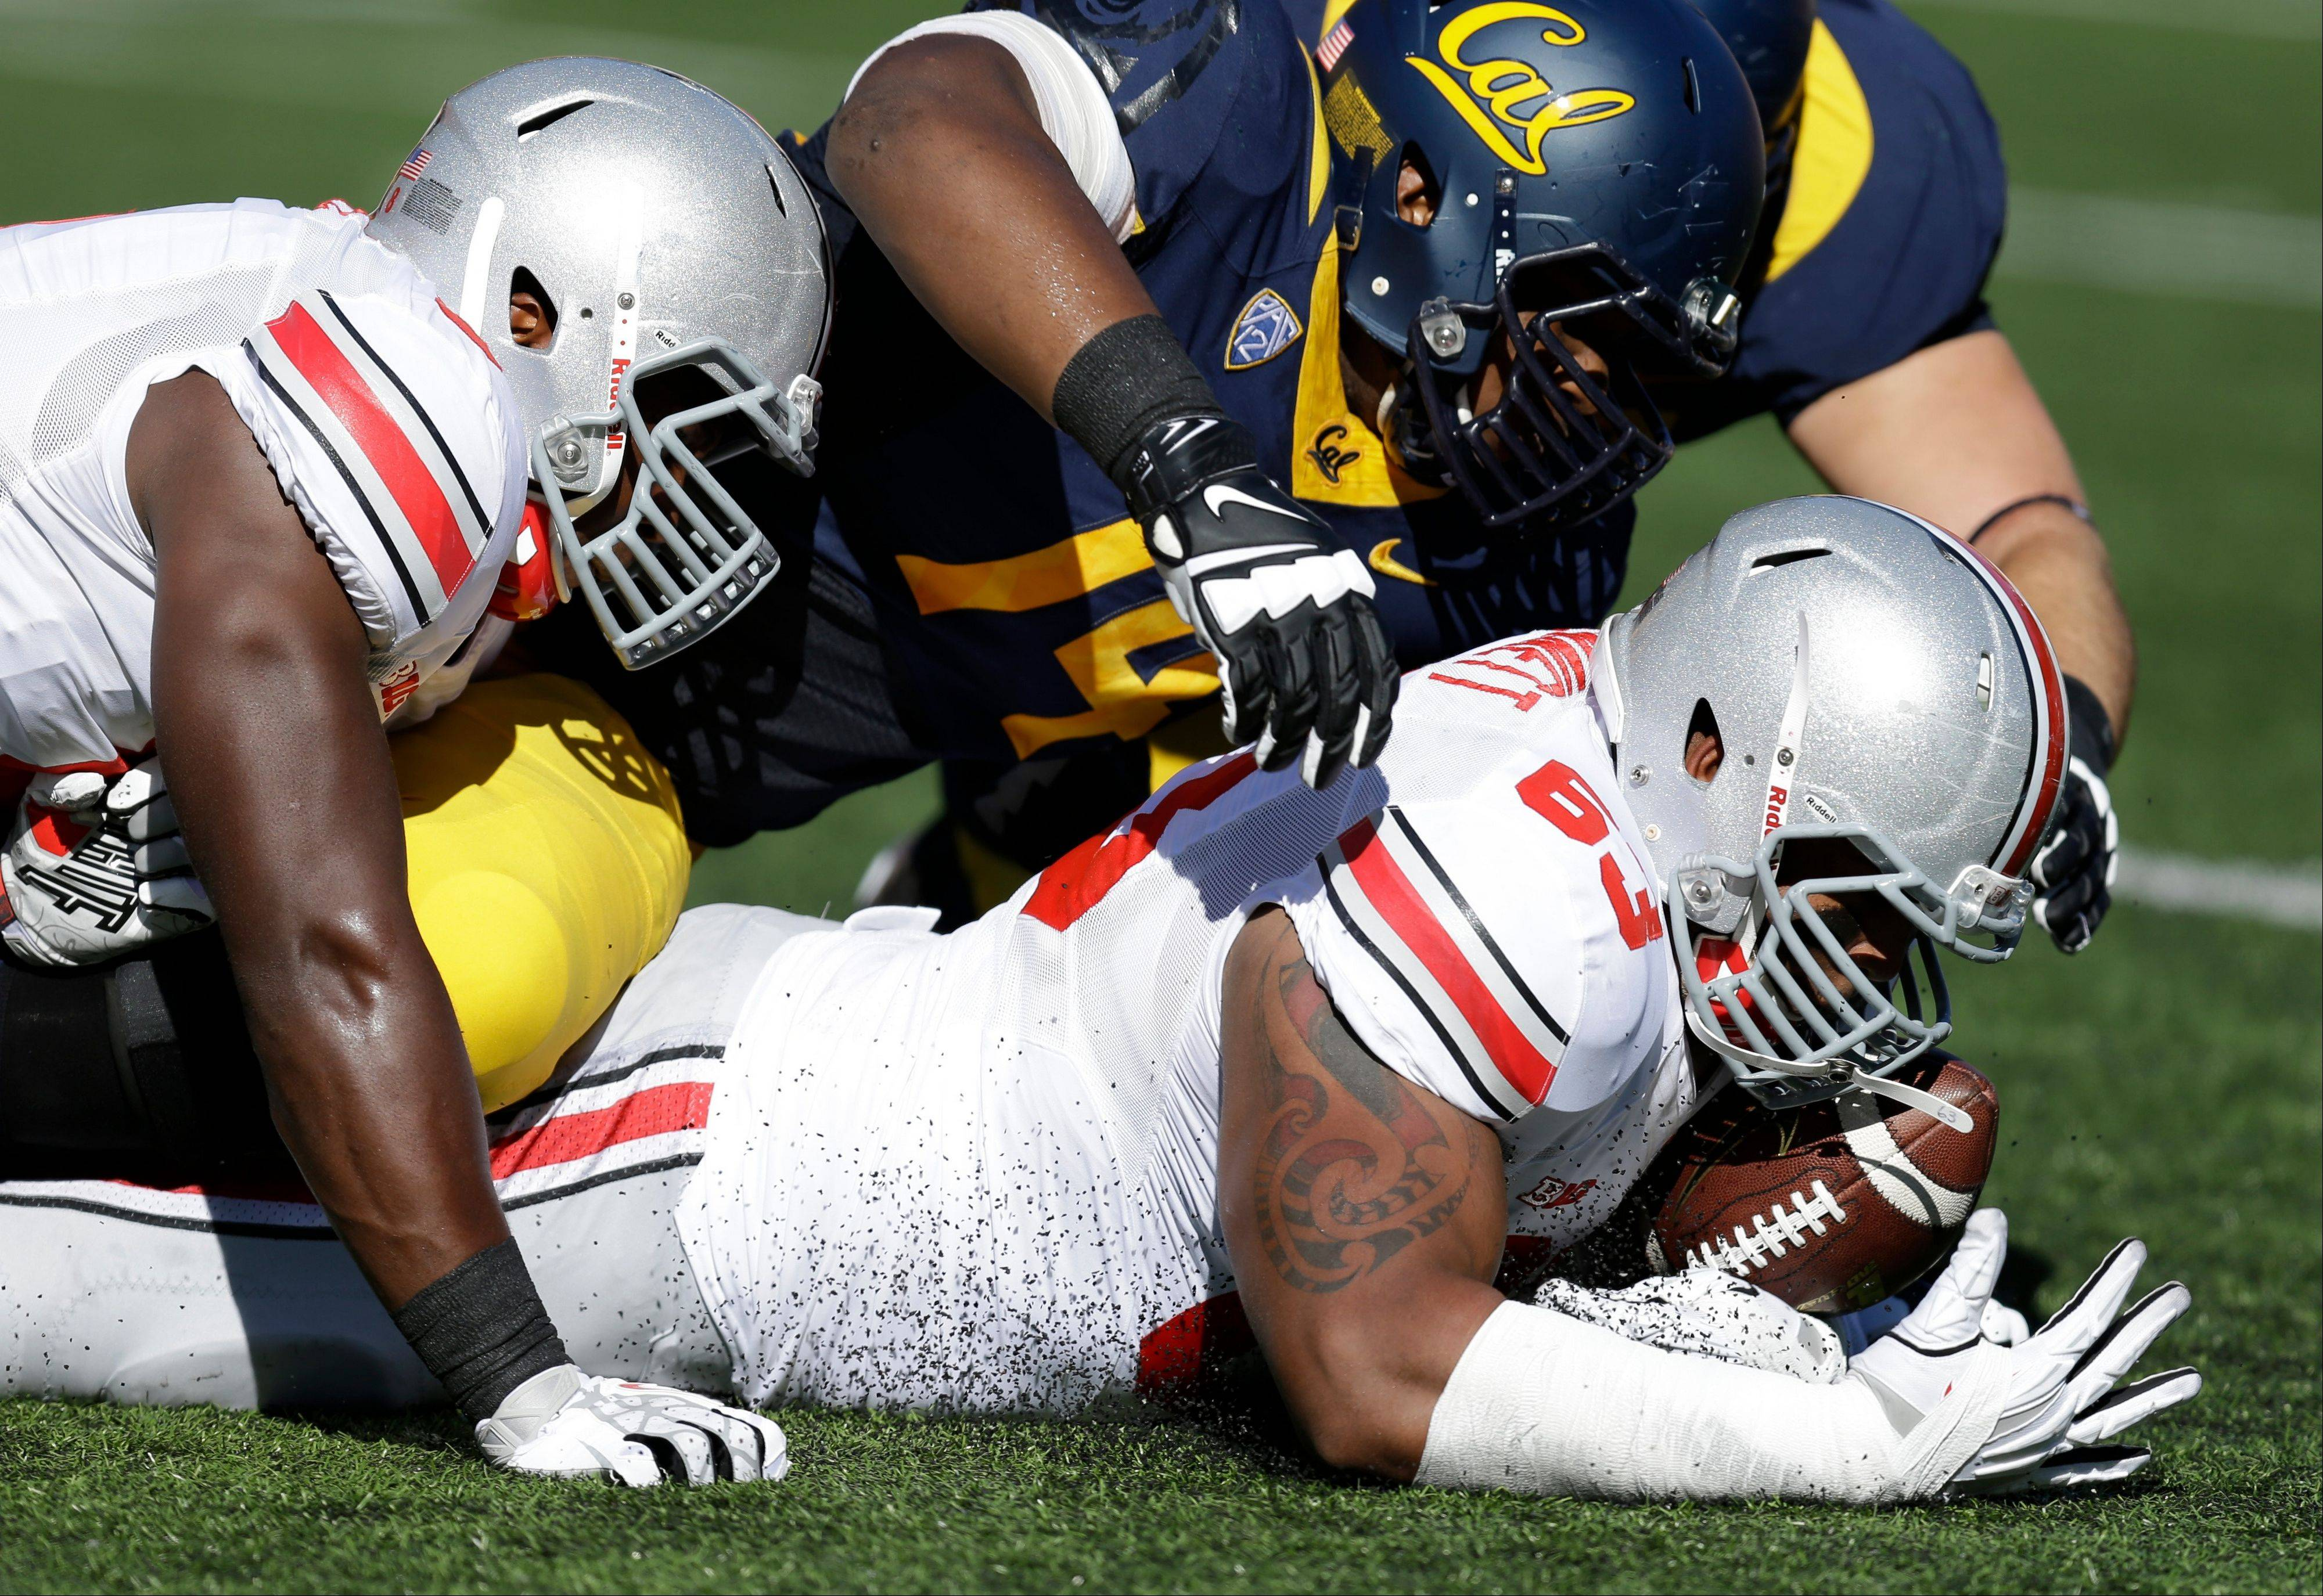 Ohio State�s Michael Bennett recovers a fumble by Cal�s Jared Goff during the first quarter last Saturday�s game in Berkeley, Calif.